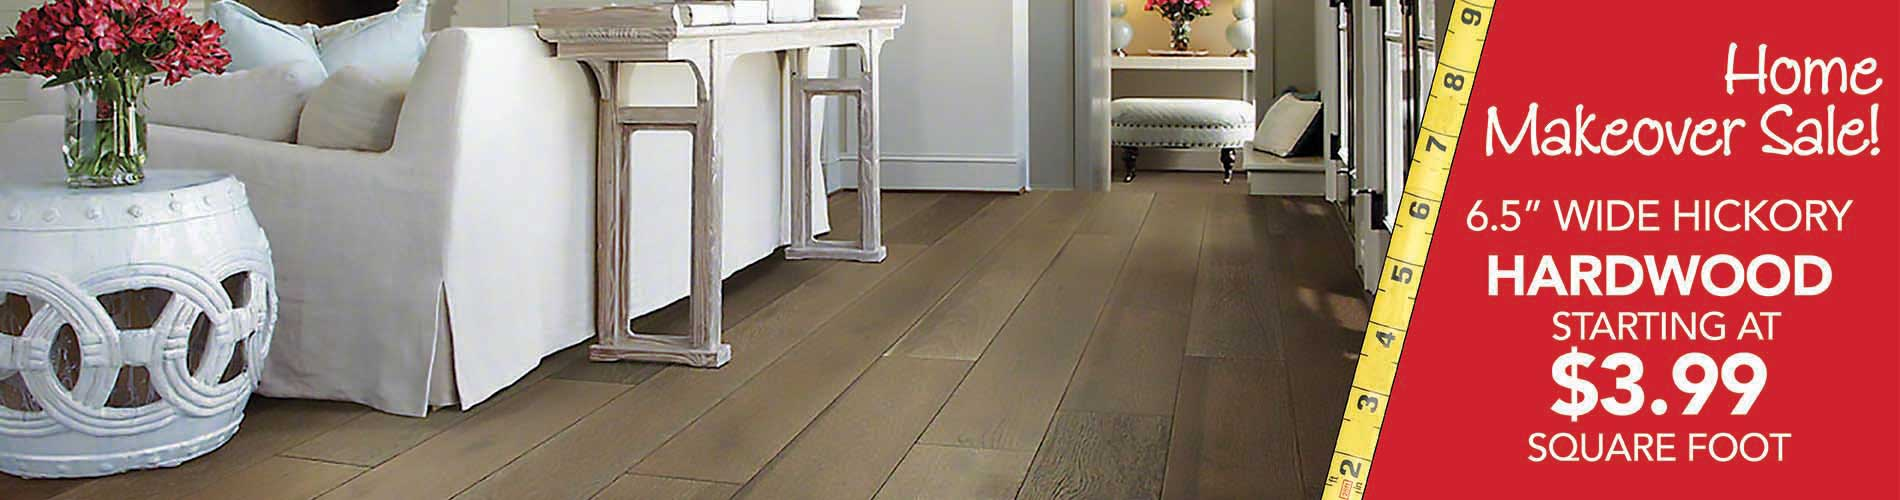 """6.5"""" wide hickory Hardwood flooring starting at $3.99 sq.ft. during our home makeover sale at bell Carpet & Floors in wichita"""